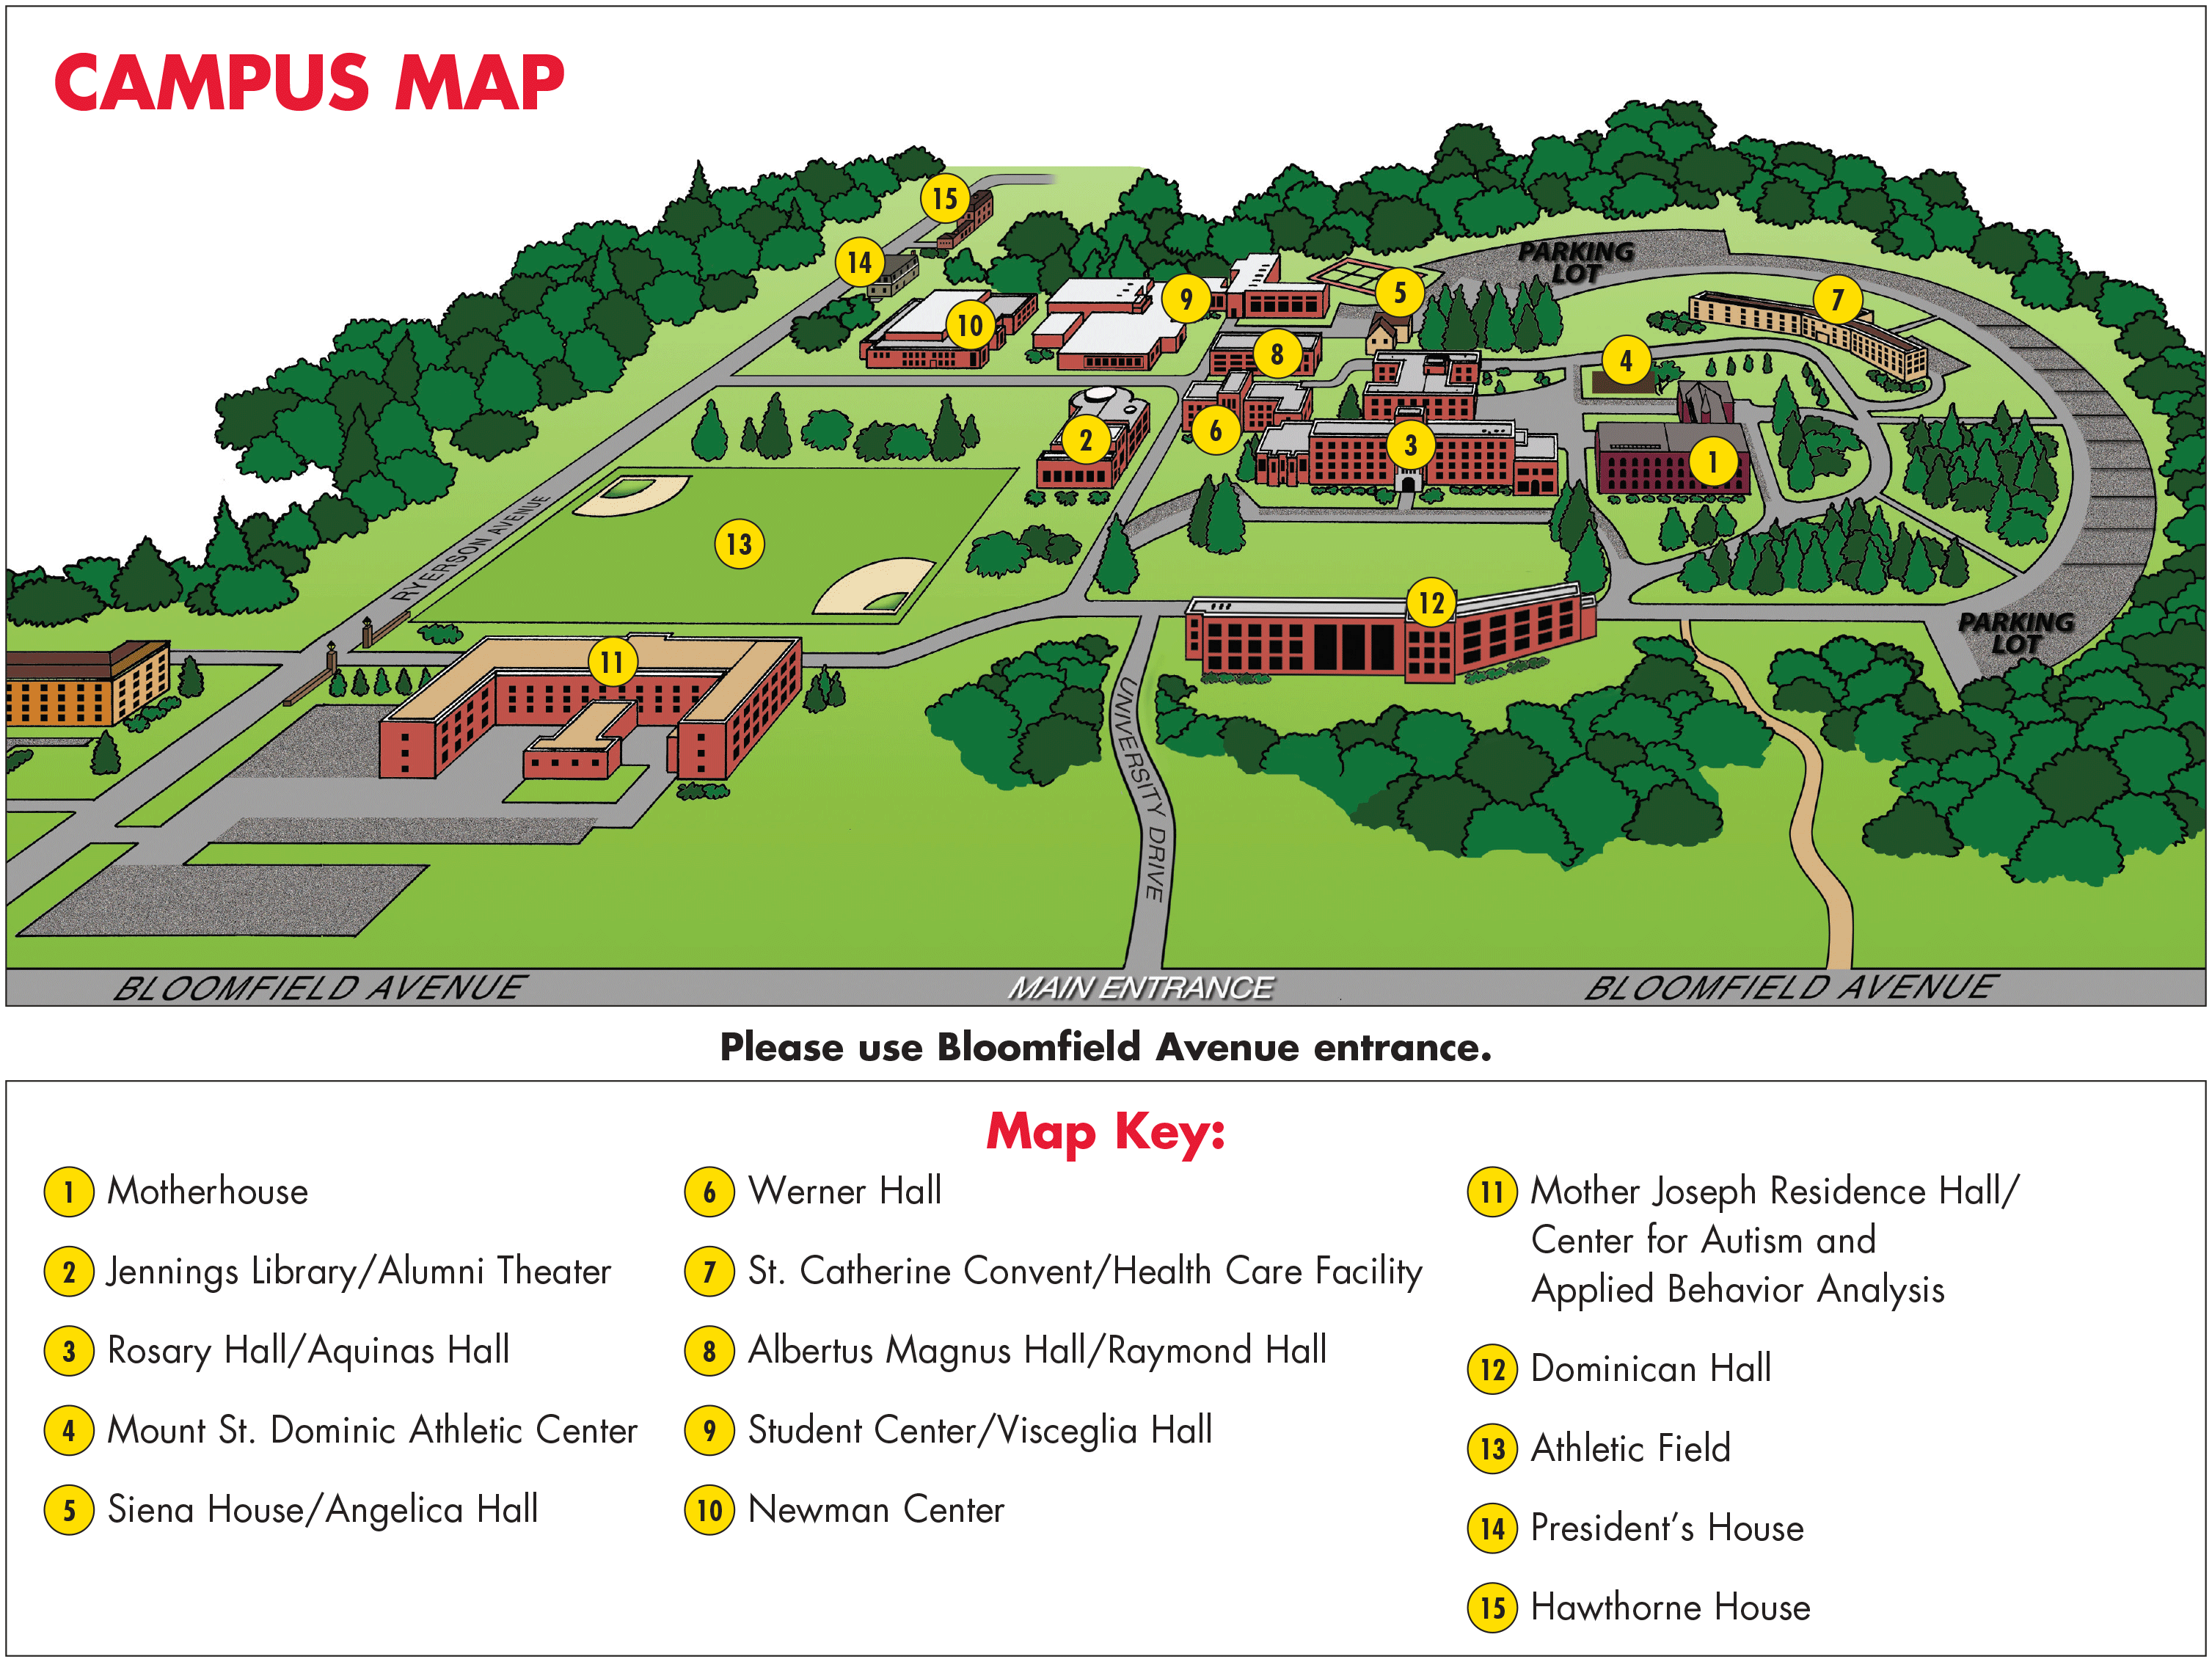 st joseph university campus map Campus Map Caldwell University New Je 1247086 Png Images Pngio